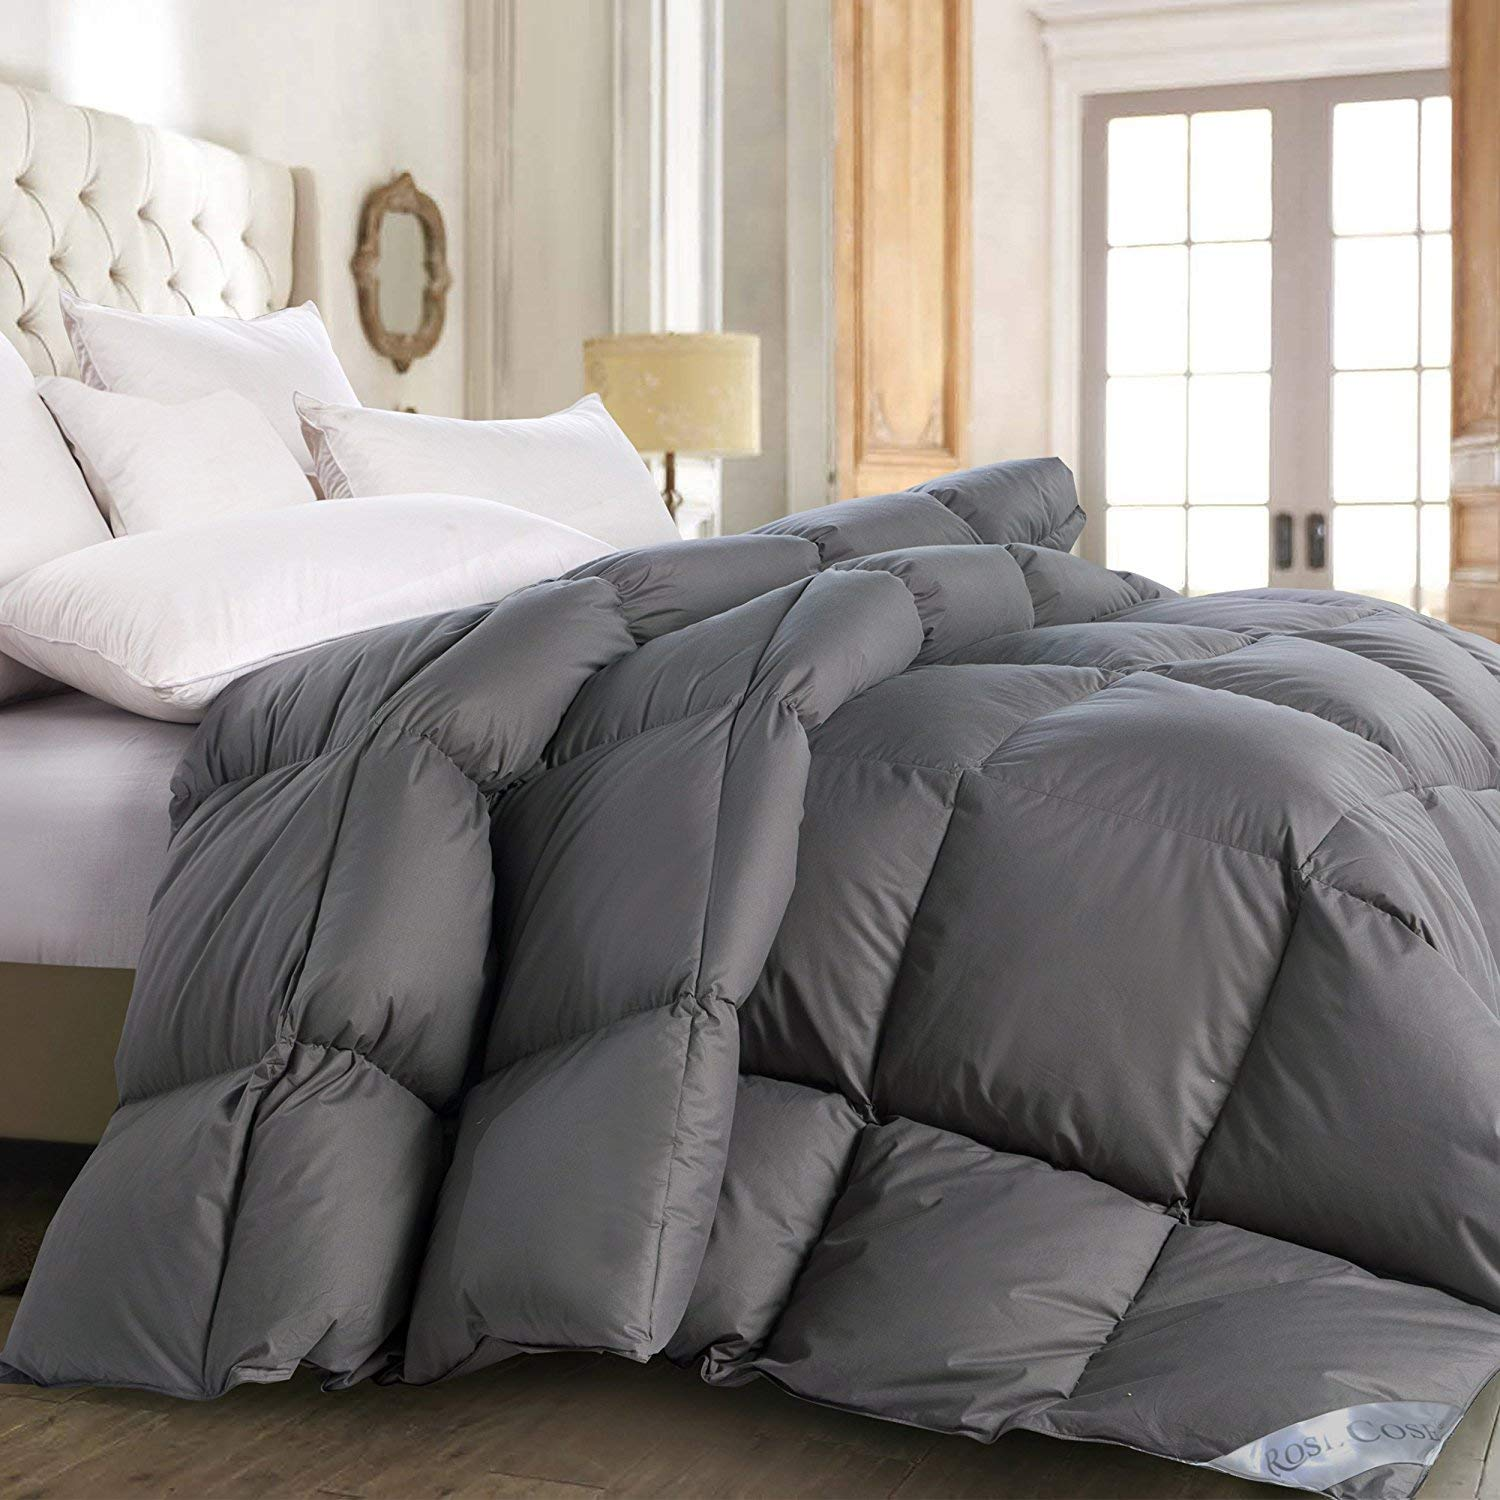 ROSECOSE Luxurious All Seasons Goose Down Comforter Queen Size Duvet Insert Gray 1200 Thread Count 750+ Fill Power 100% Cotton Shell Hypo-allergenic Down Proof with Tabs (Queen, Gray)